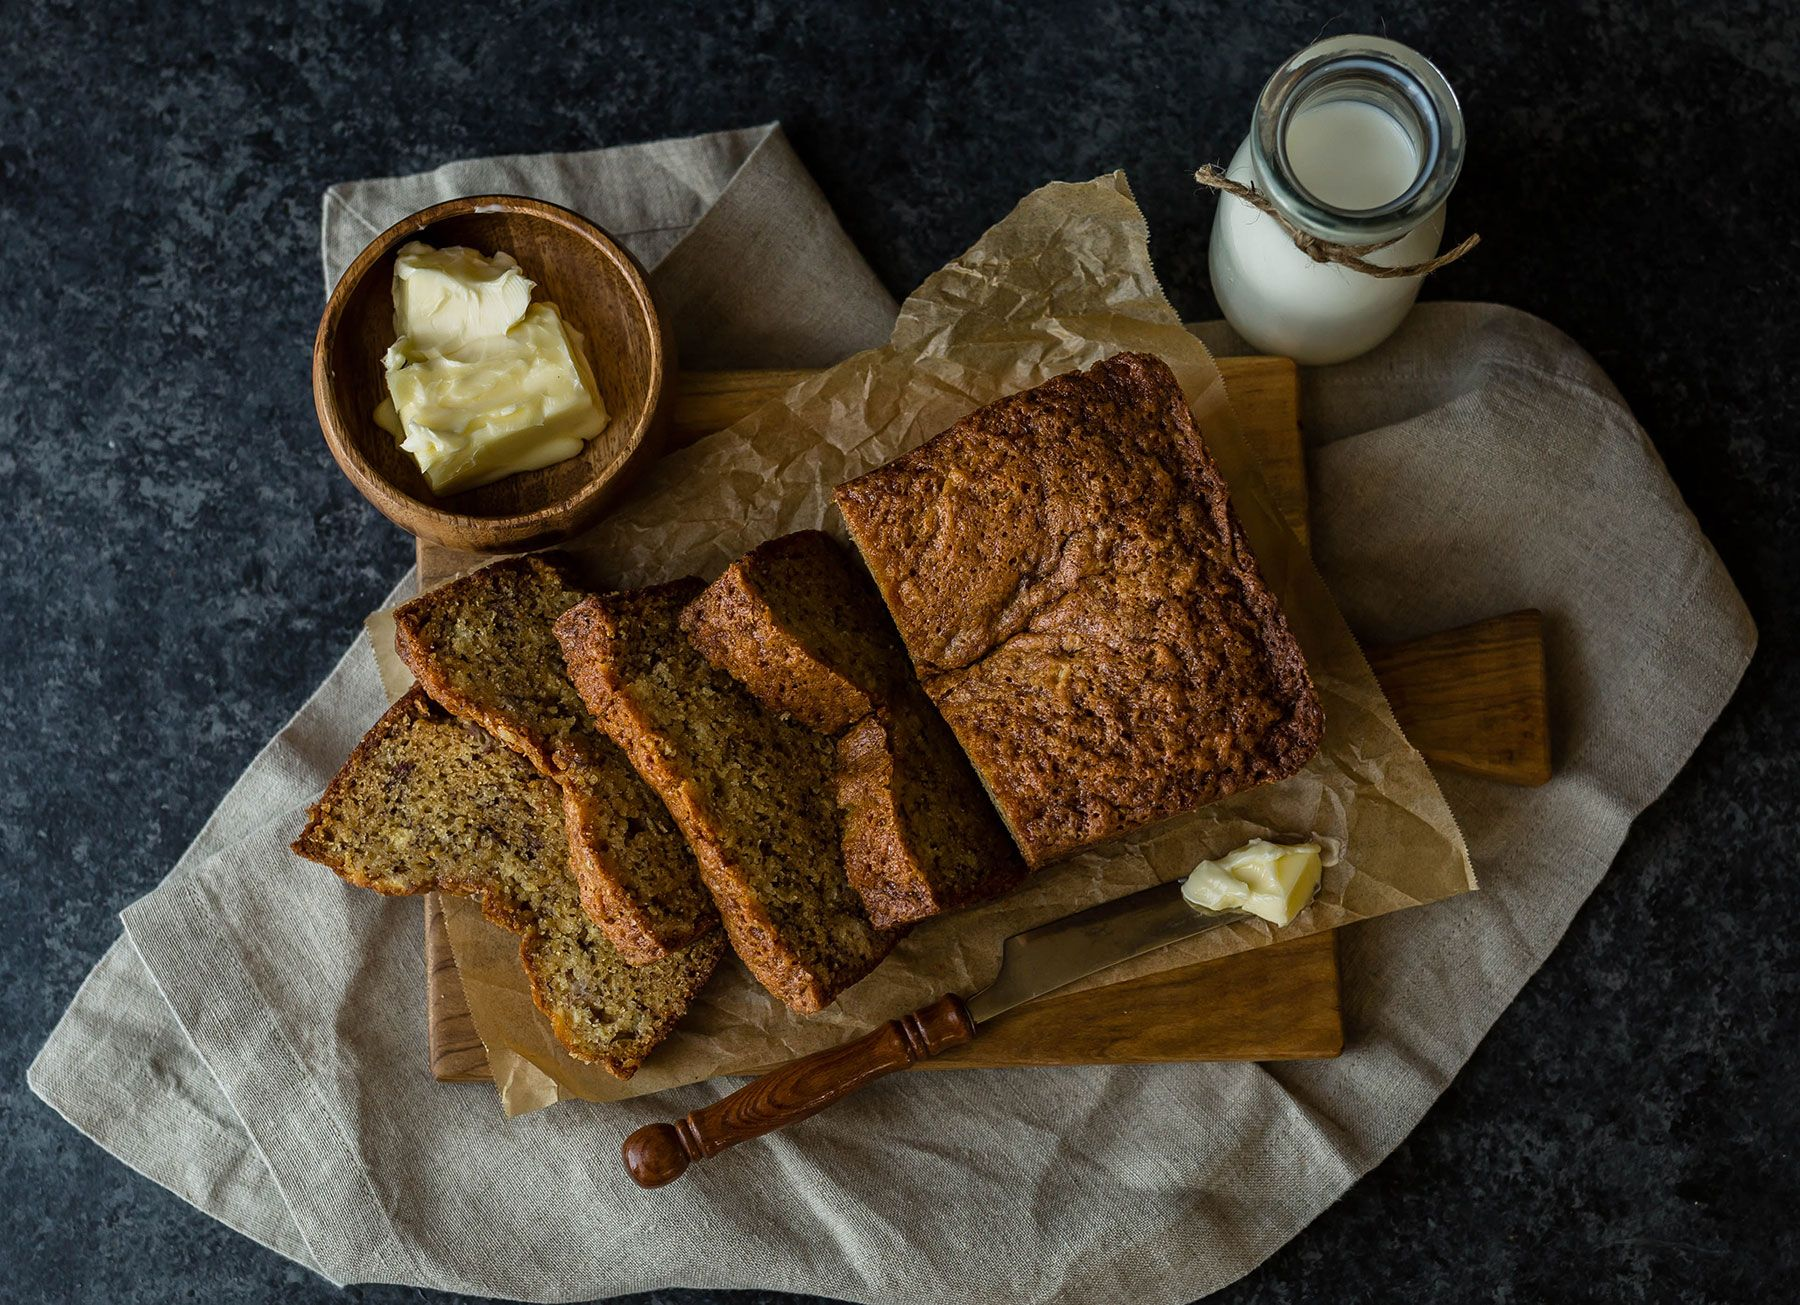 The Best And Easiest Banana Bread Recipe By A Singaporean Pastry Chef